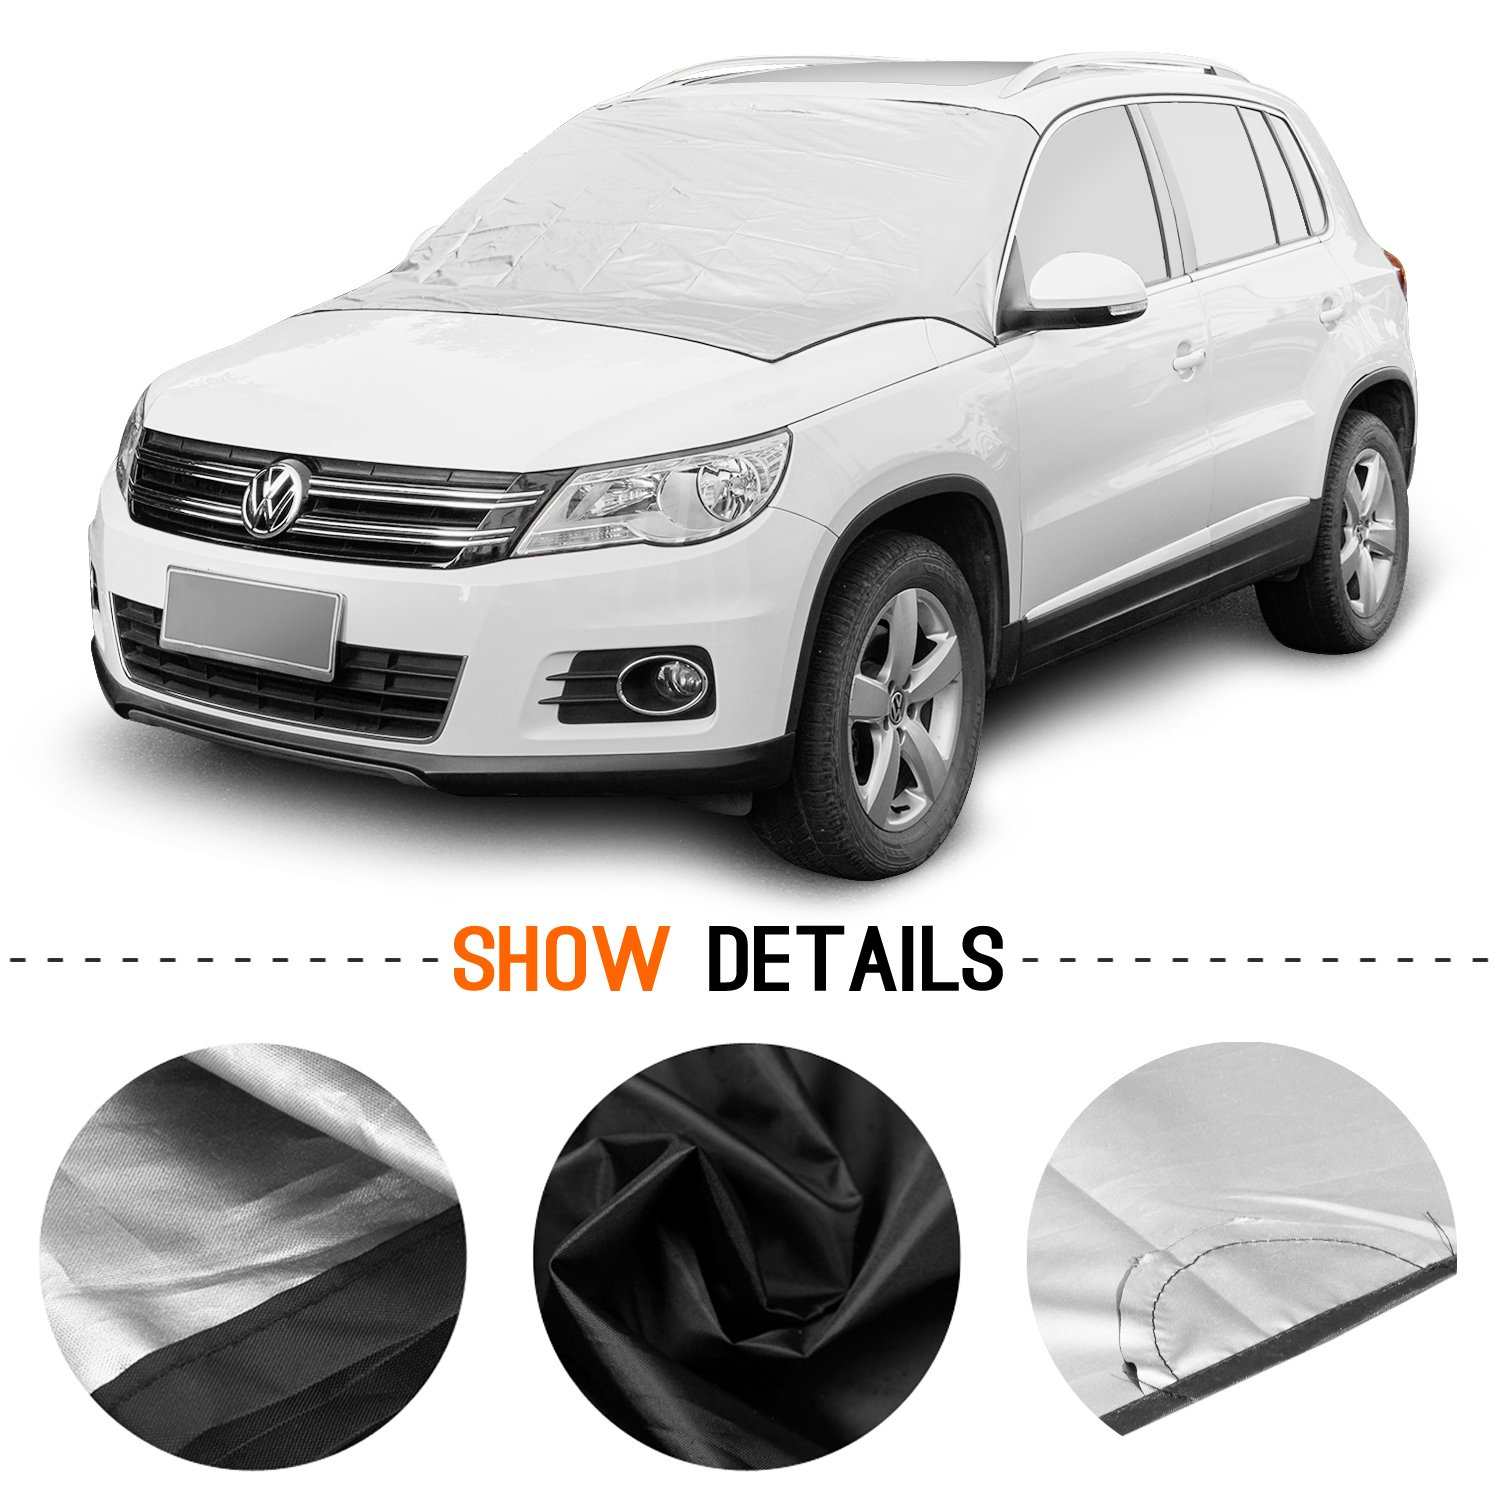 Magnetic; 215 * 125 cm Magnetic Snow Multi-used as Outdoors Picnic Mats Ice and Frost Guard Fits SUV Truck /& Car Windshields SCM Frost Windshield Cover